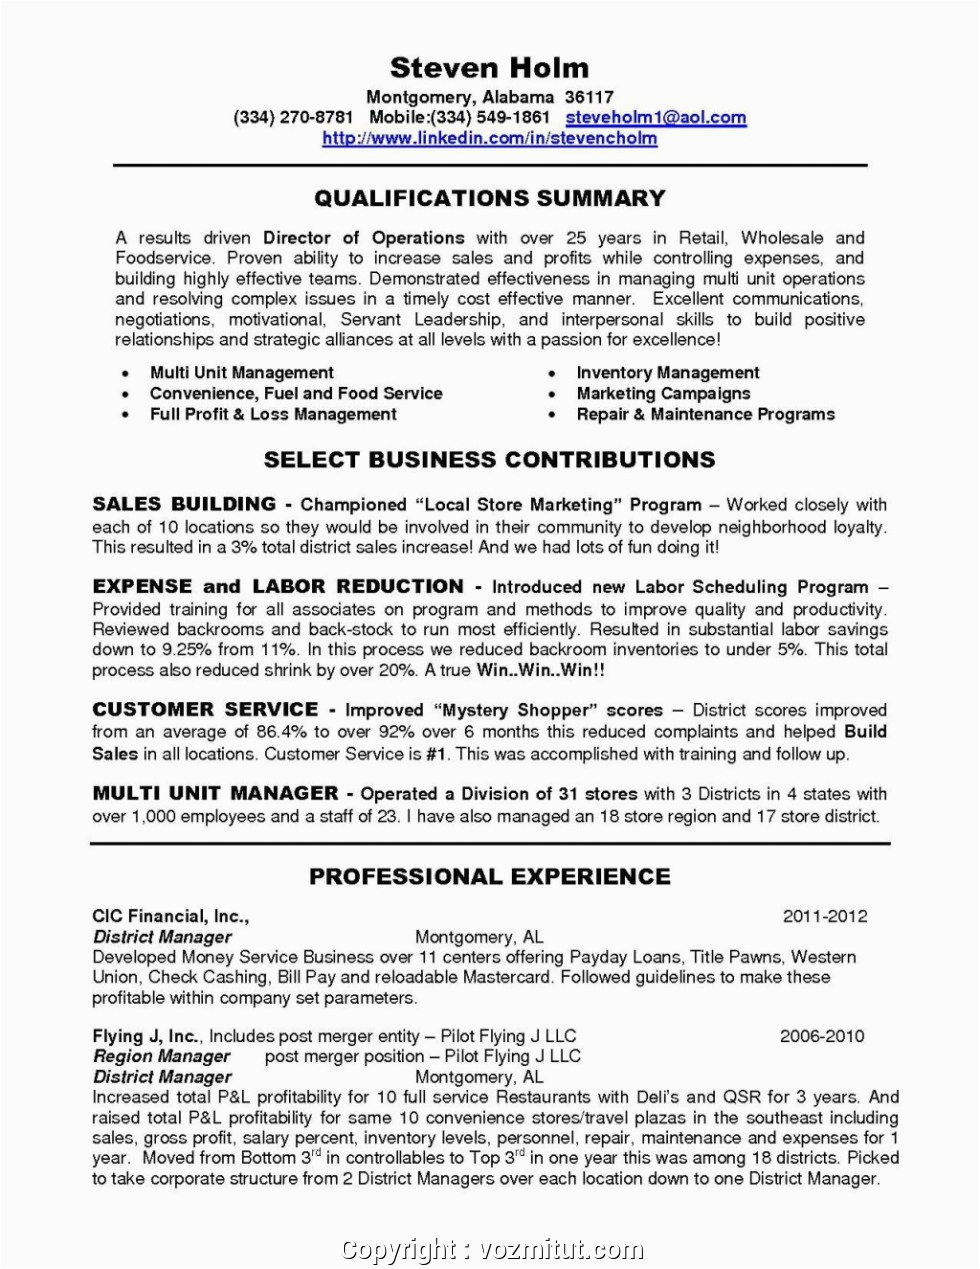 Sample Resume for Hospitality and tourism Management Create Resume Manager tourism Hospitality and tourism